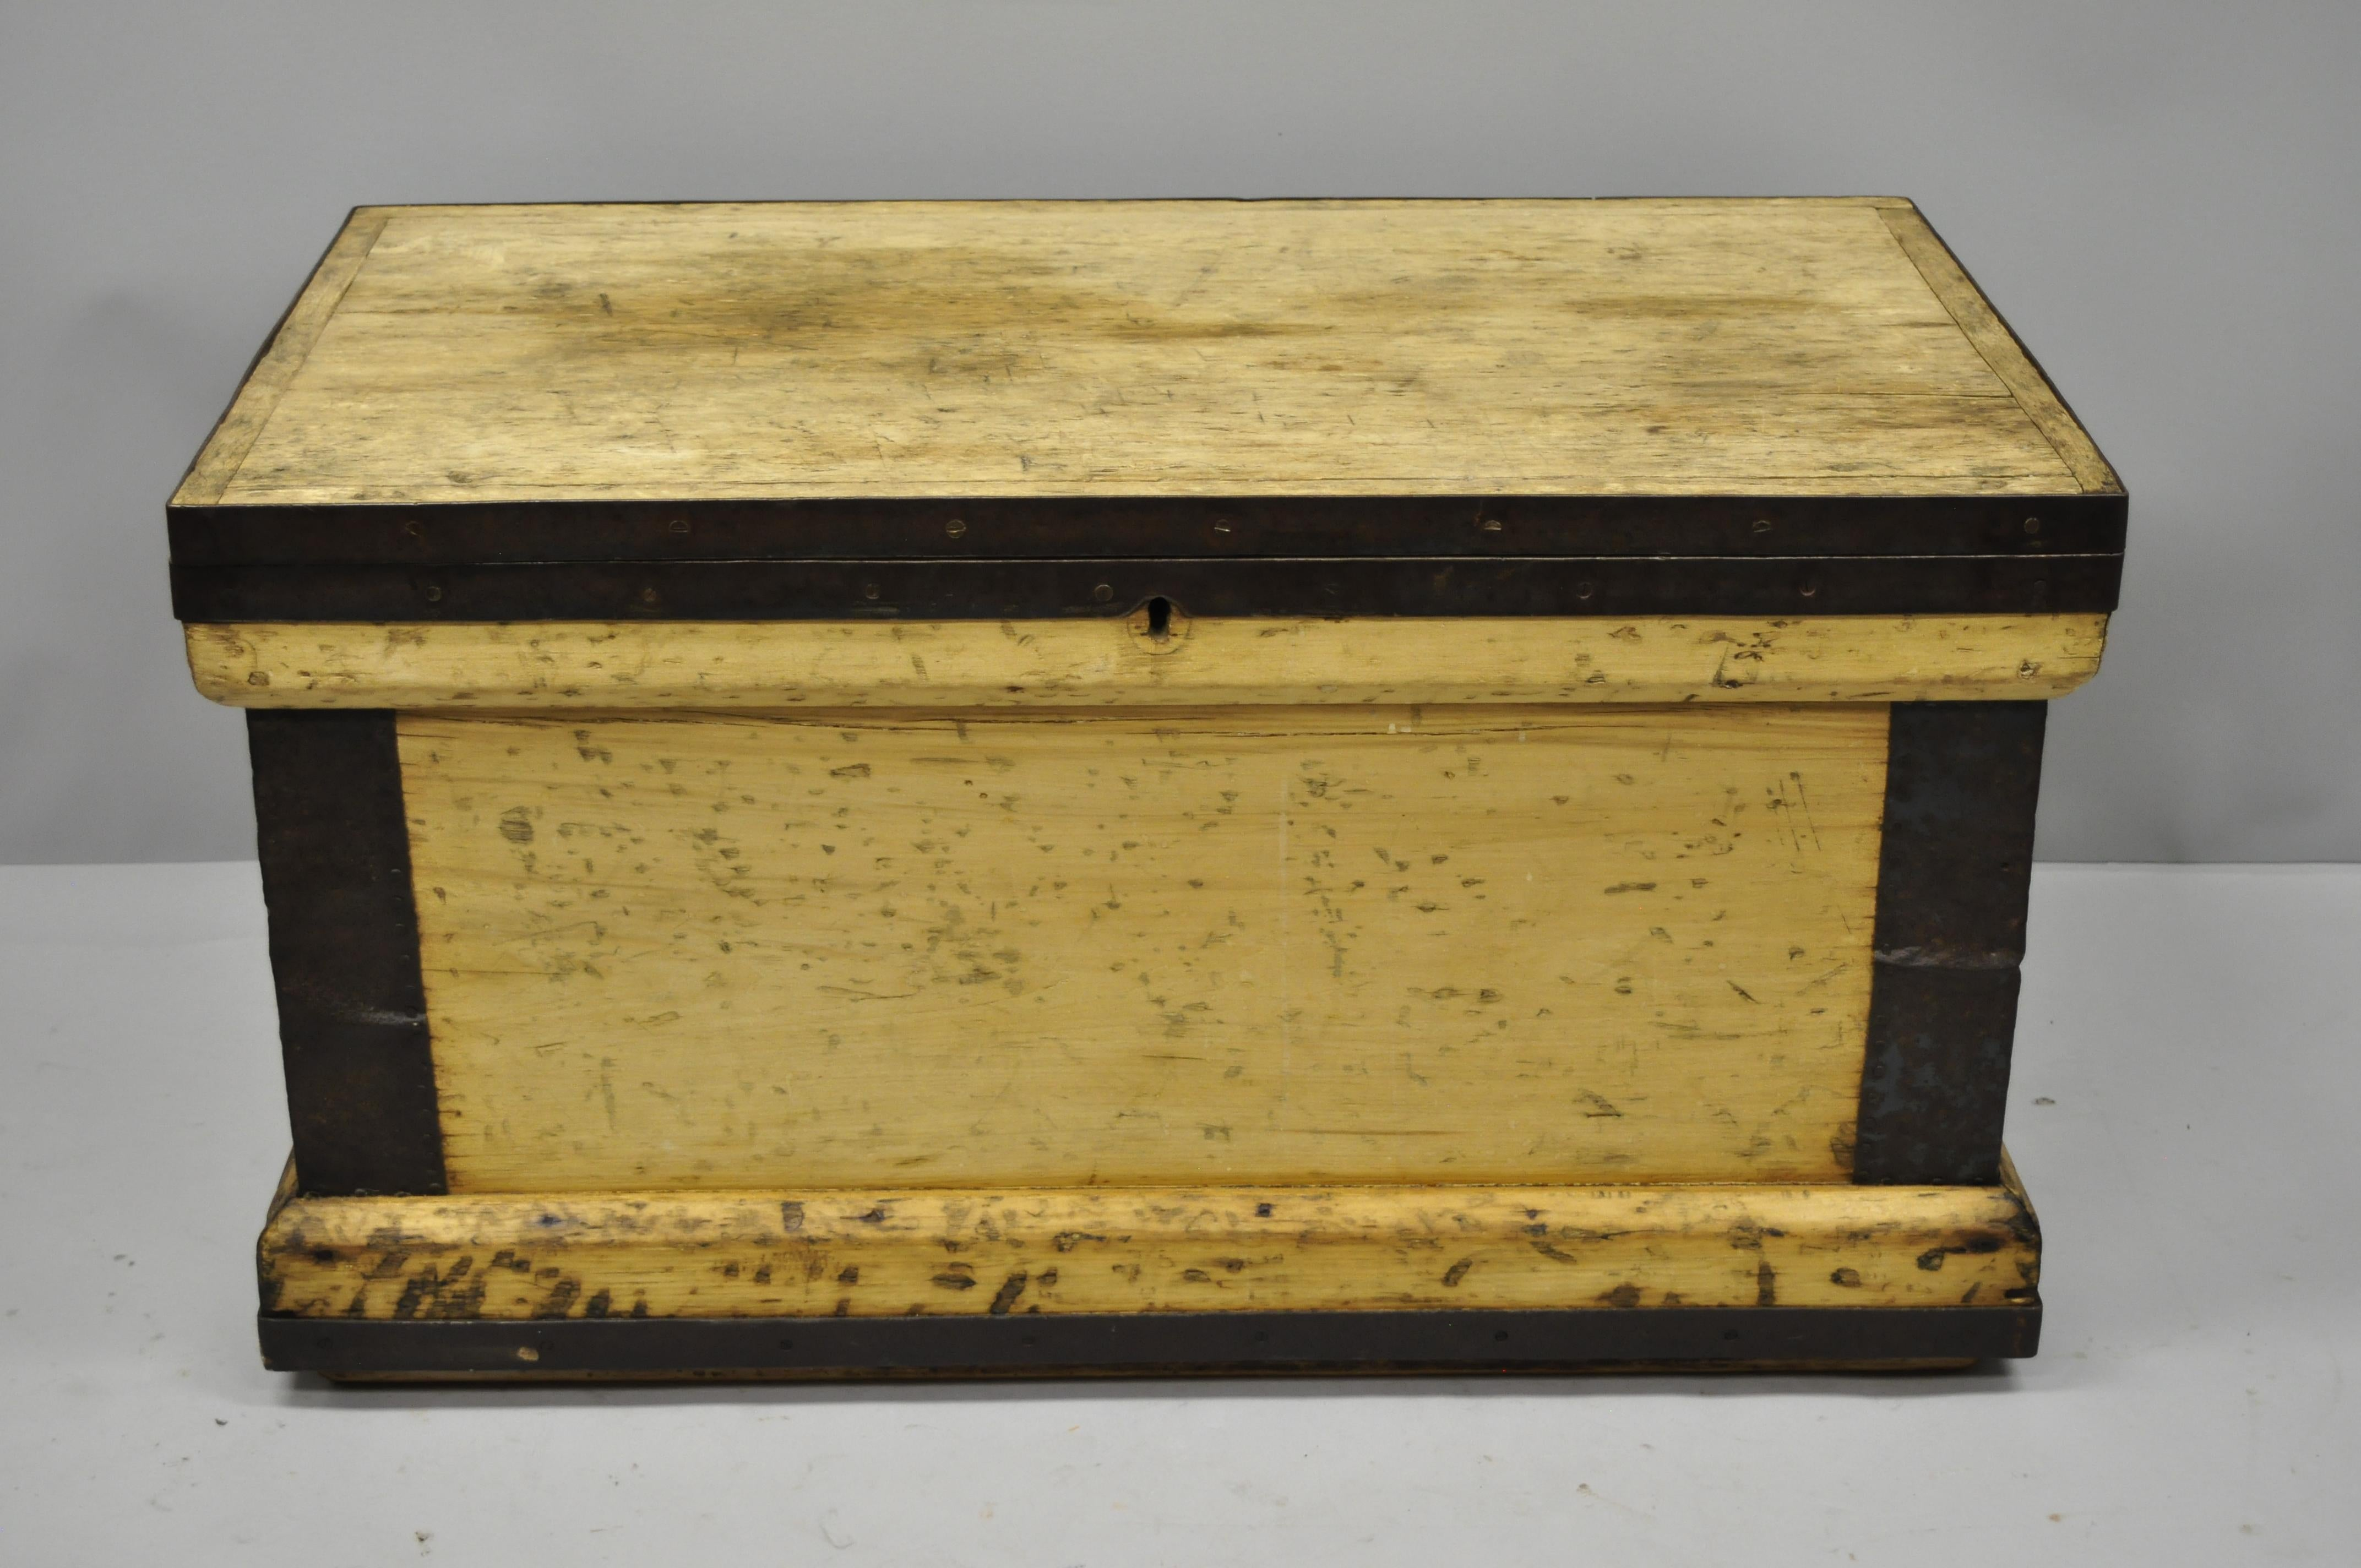 Antique Wood And Cast Iron Primitive Industrial Trunk Blanket Storage Chest.  Item Features Heavy Solid